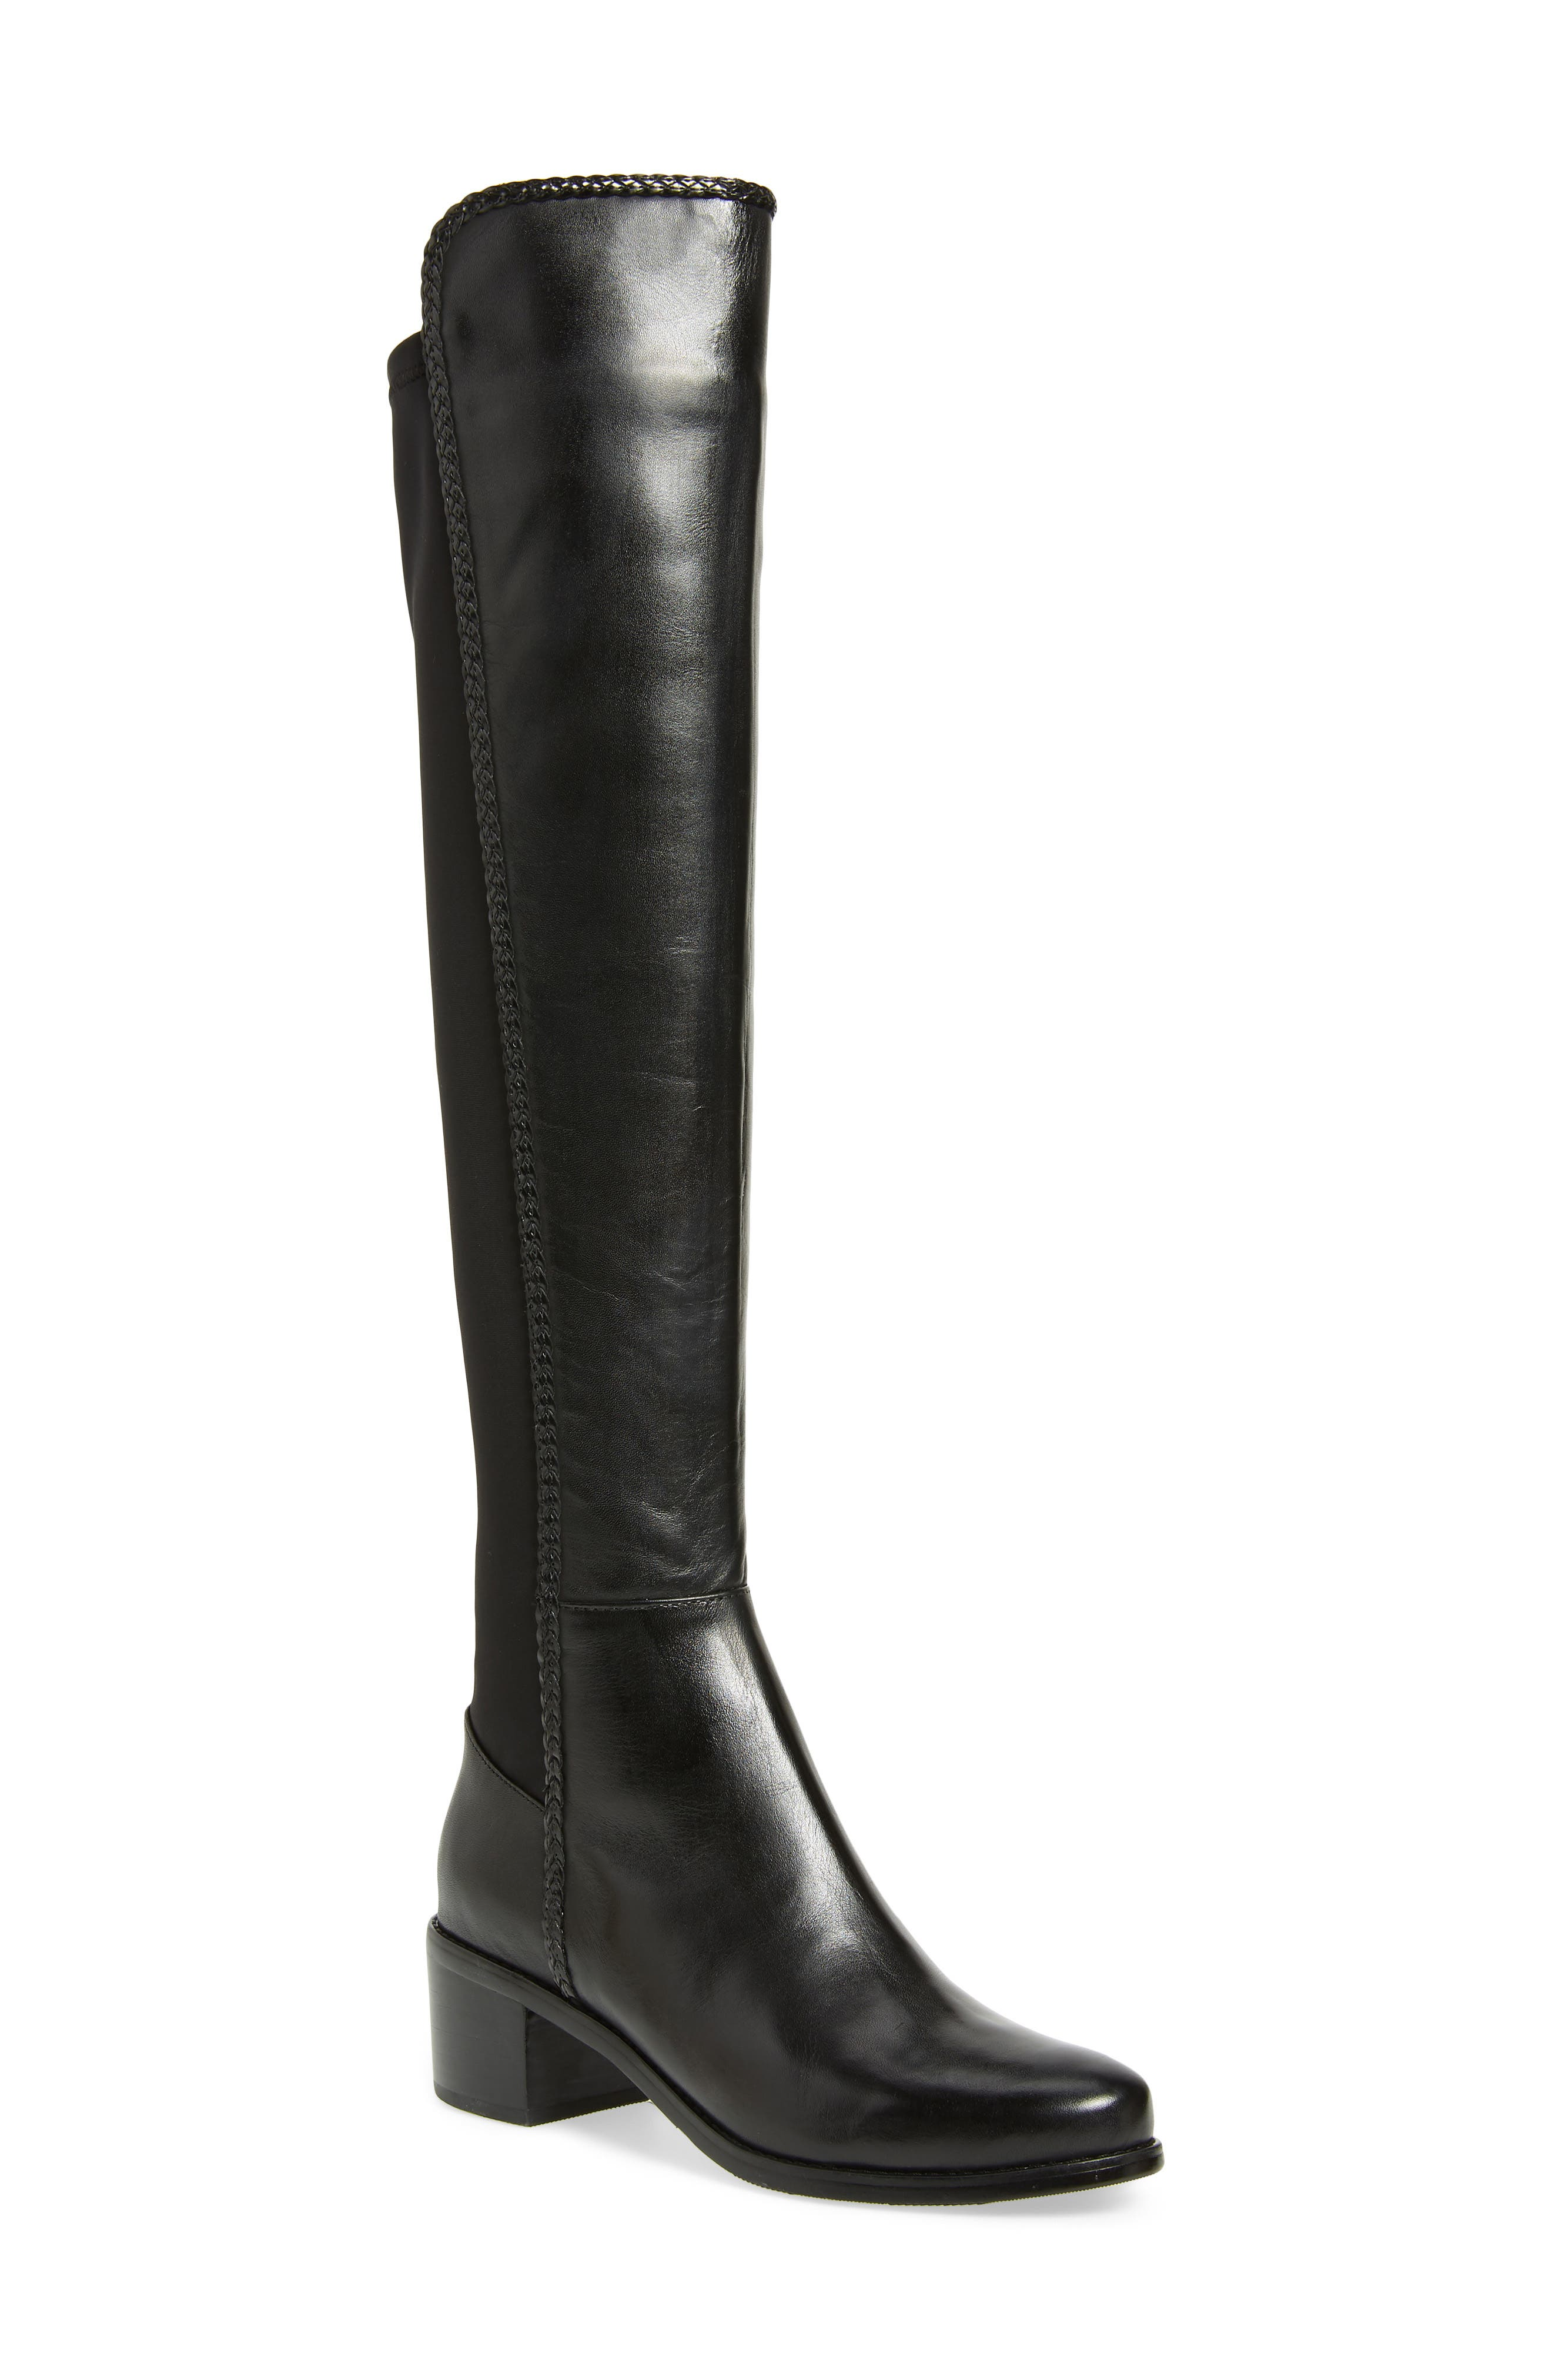 AQUADIVA Florence Waterproof Over the Knee Boot, Main, color, BLACK LEATHER